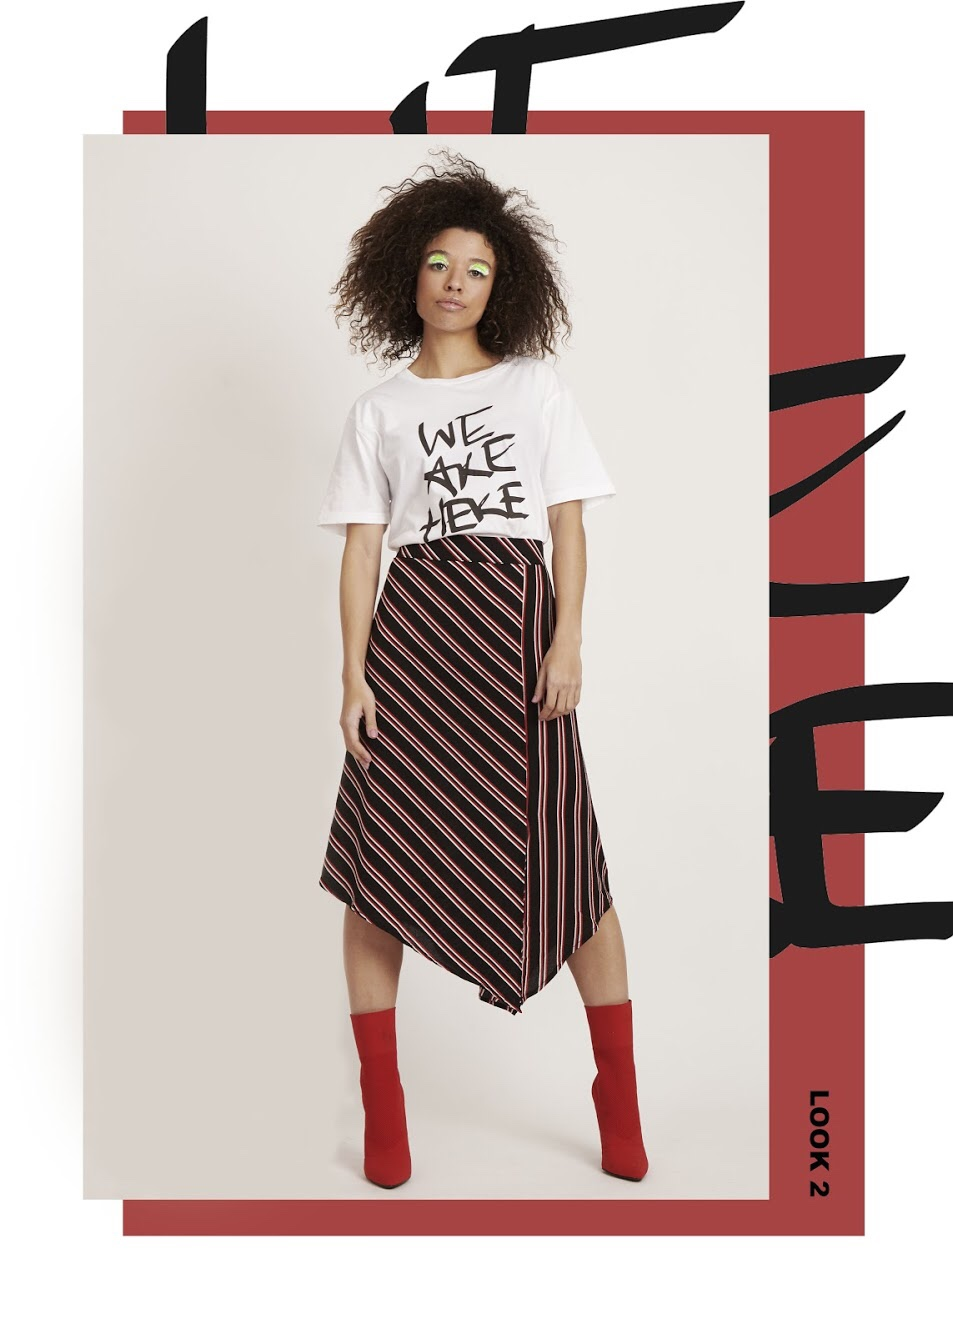 We Are Here digital print t-shirt